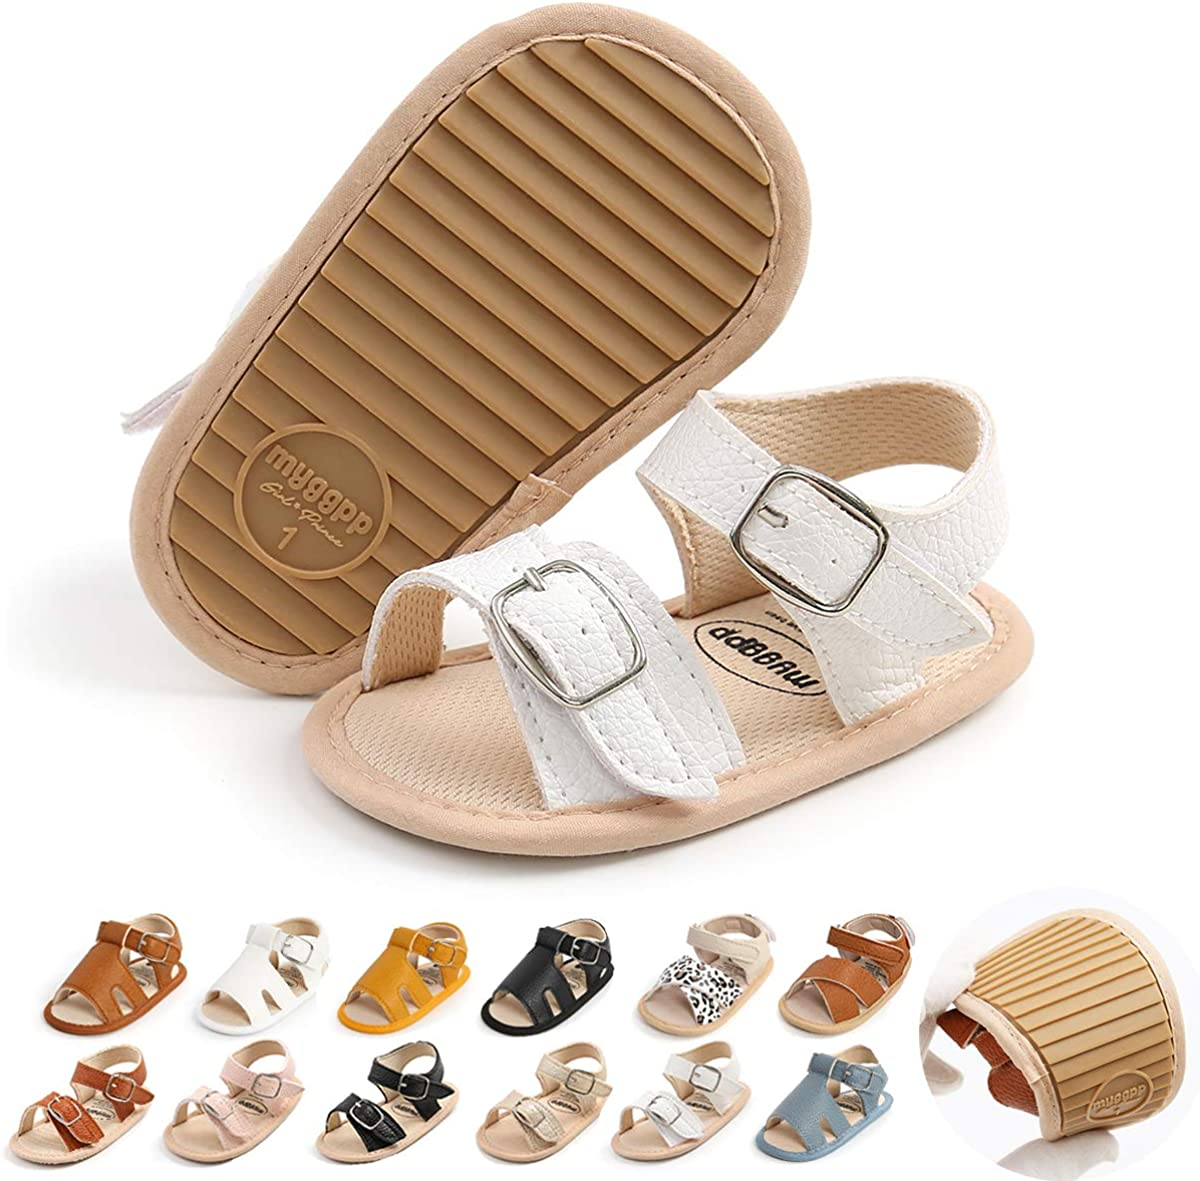 Premium Baby Boys Girls Sandals, Soft Non-Slip Rubber Sole Summer Infant Toddler Baby Walking Shoes, Flat Shoes First Walkers